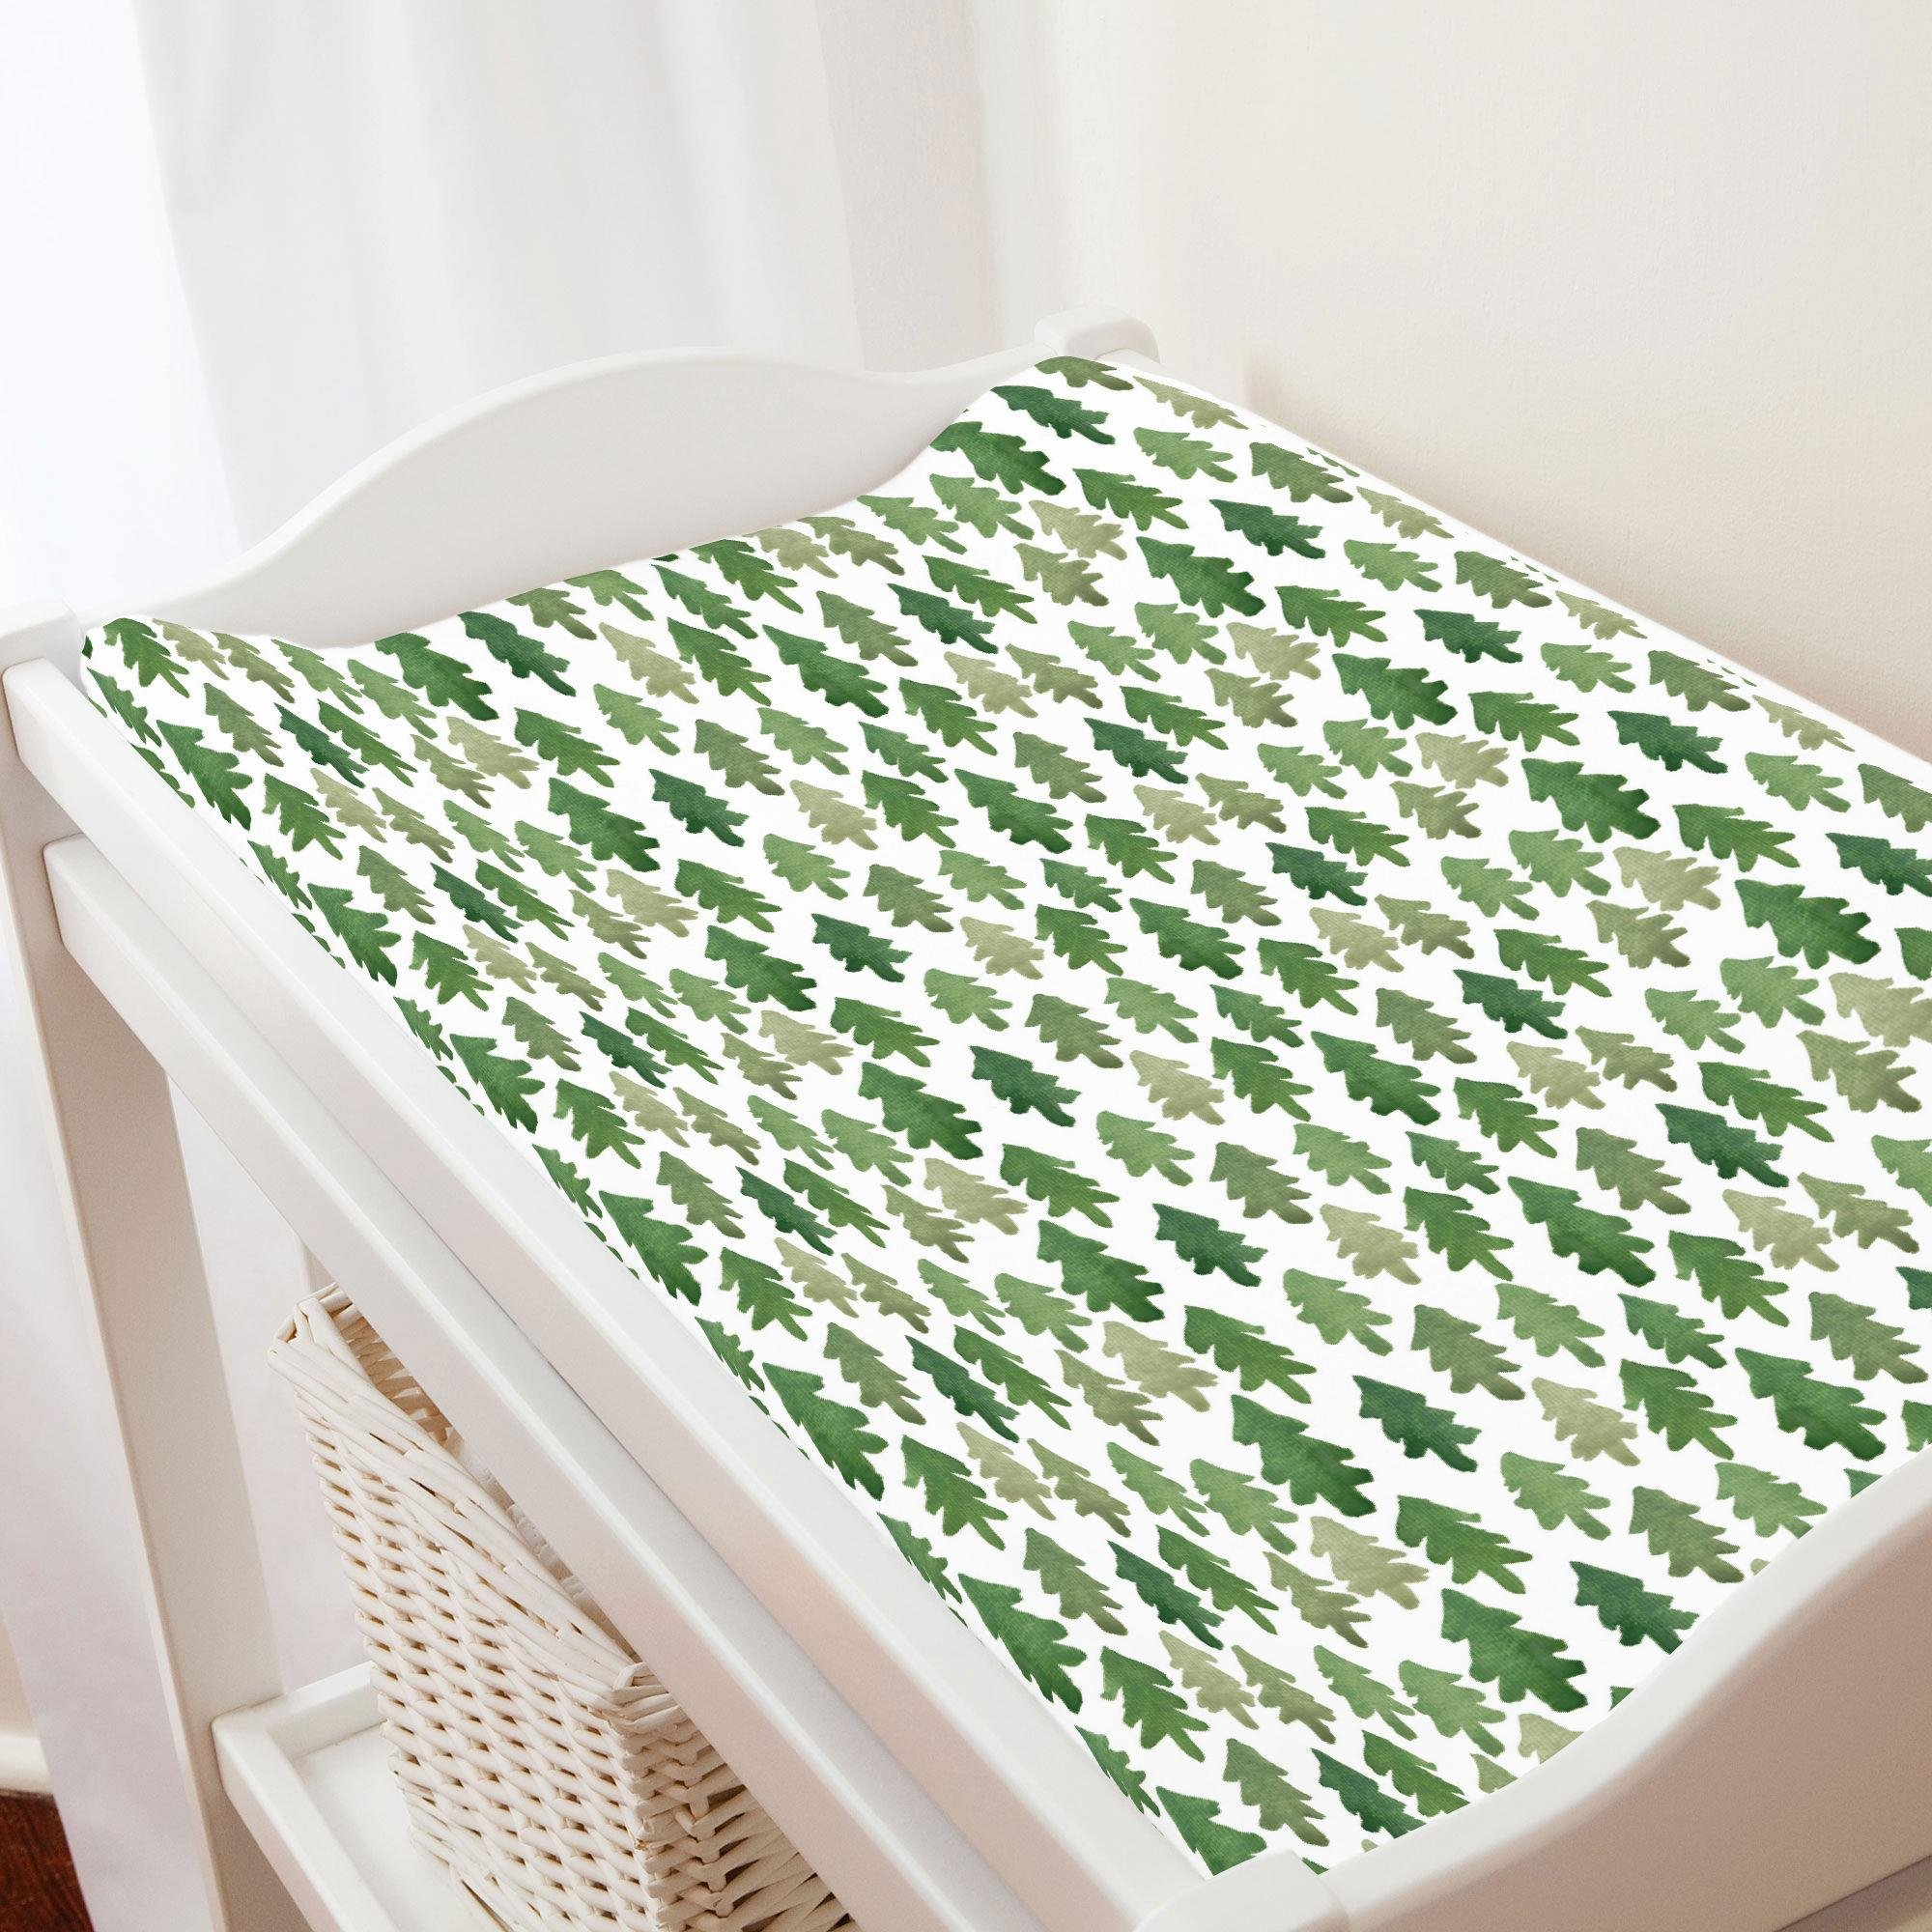 Carousel Designs Evergreen Forest Changing Pad Cover   Organic 100% Cotton  Change Pad Cover